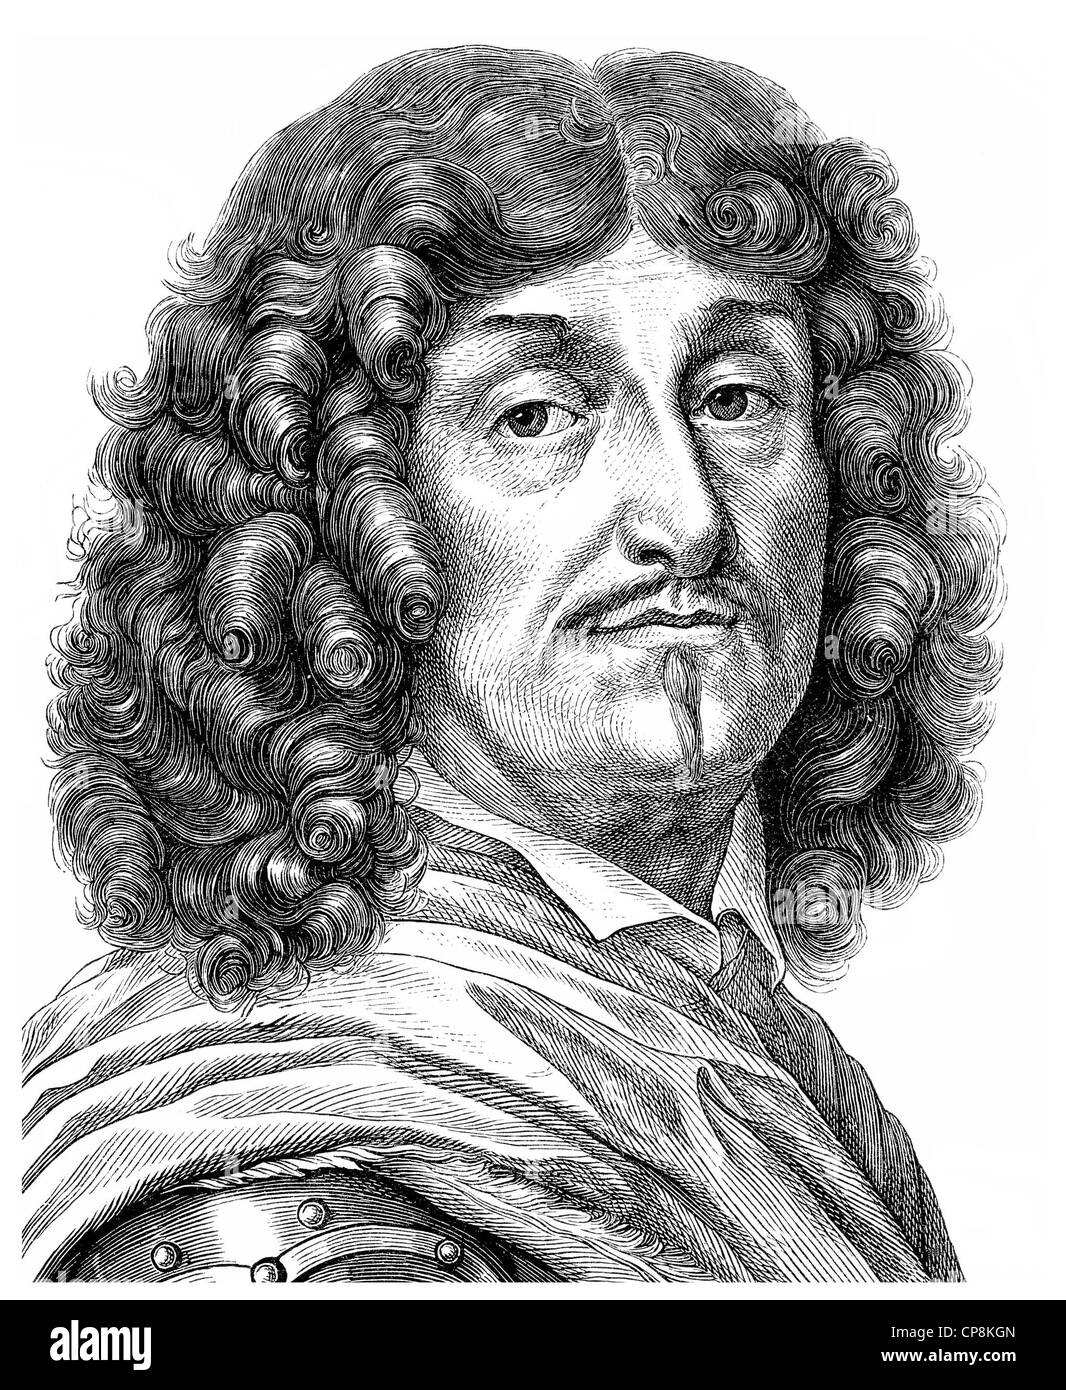 George von Derfflinger, 1606 - 1695, Field Marshal in Brandenburg by appointment of the Elector and Governor of - Stock Image